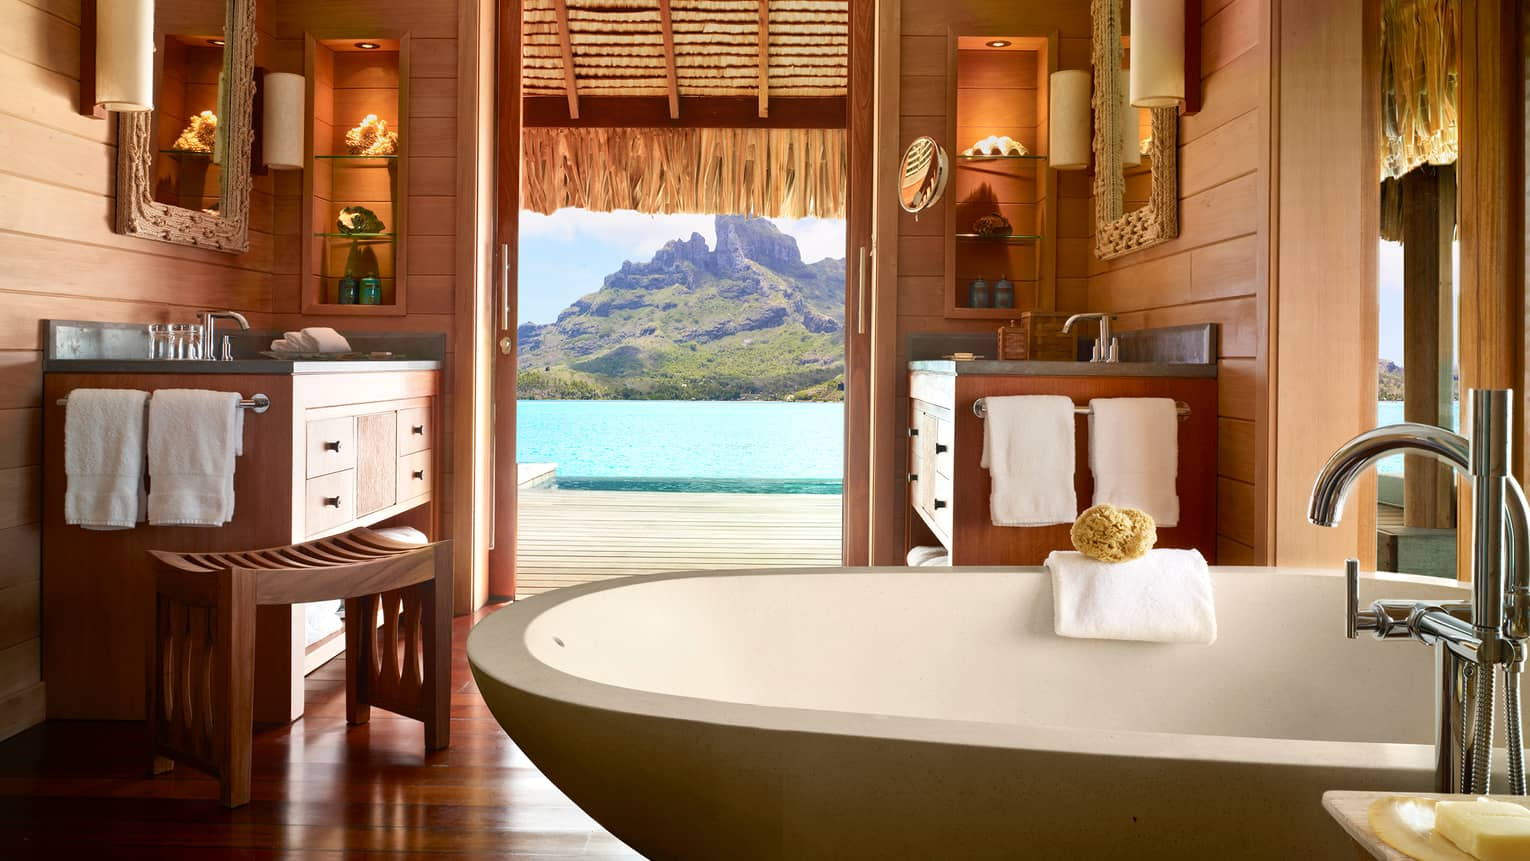 The Four Seasons Bora Bora Overwater Bungalow Suite. (Photo courtesy of Four Seasons Bora Bora)